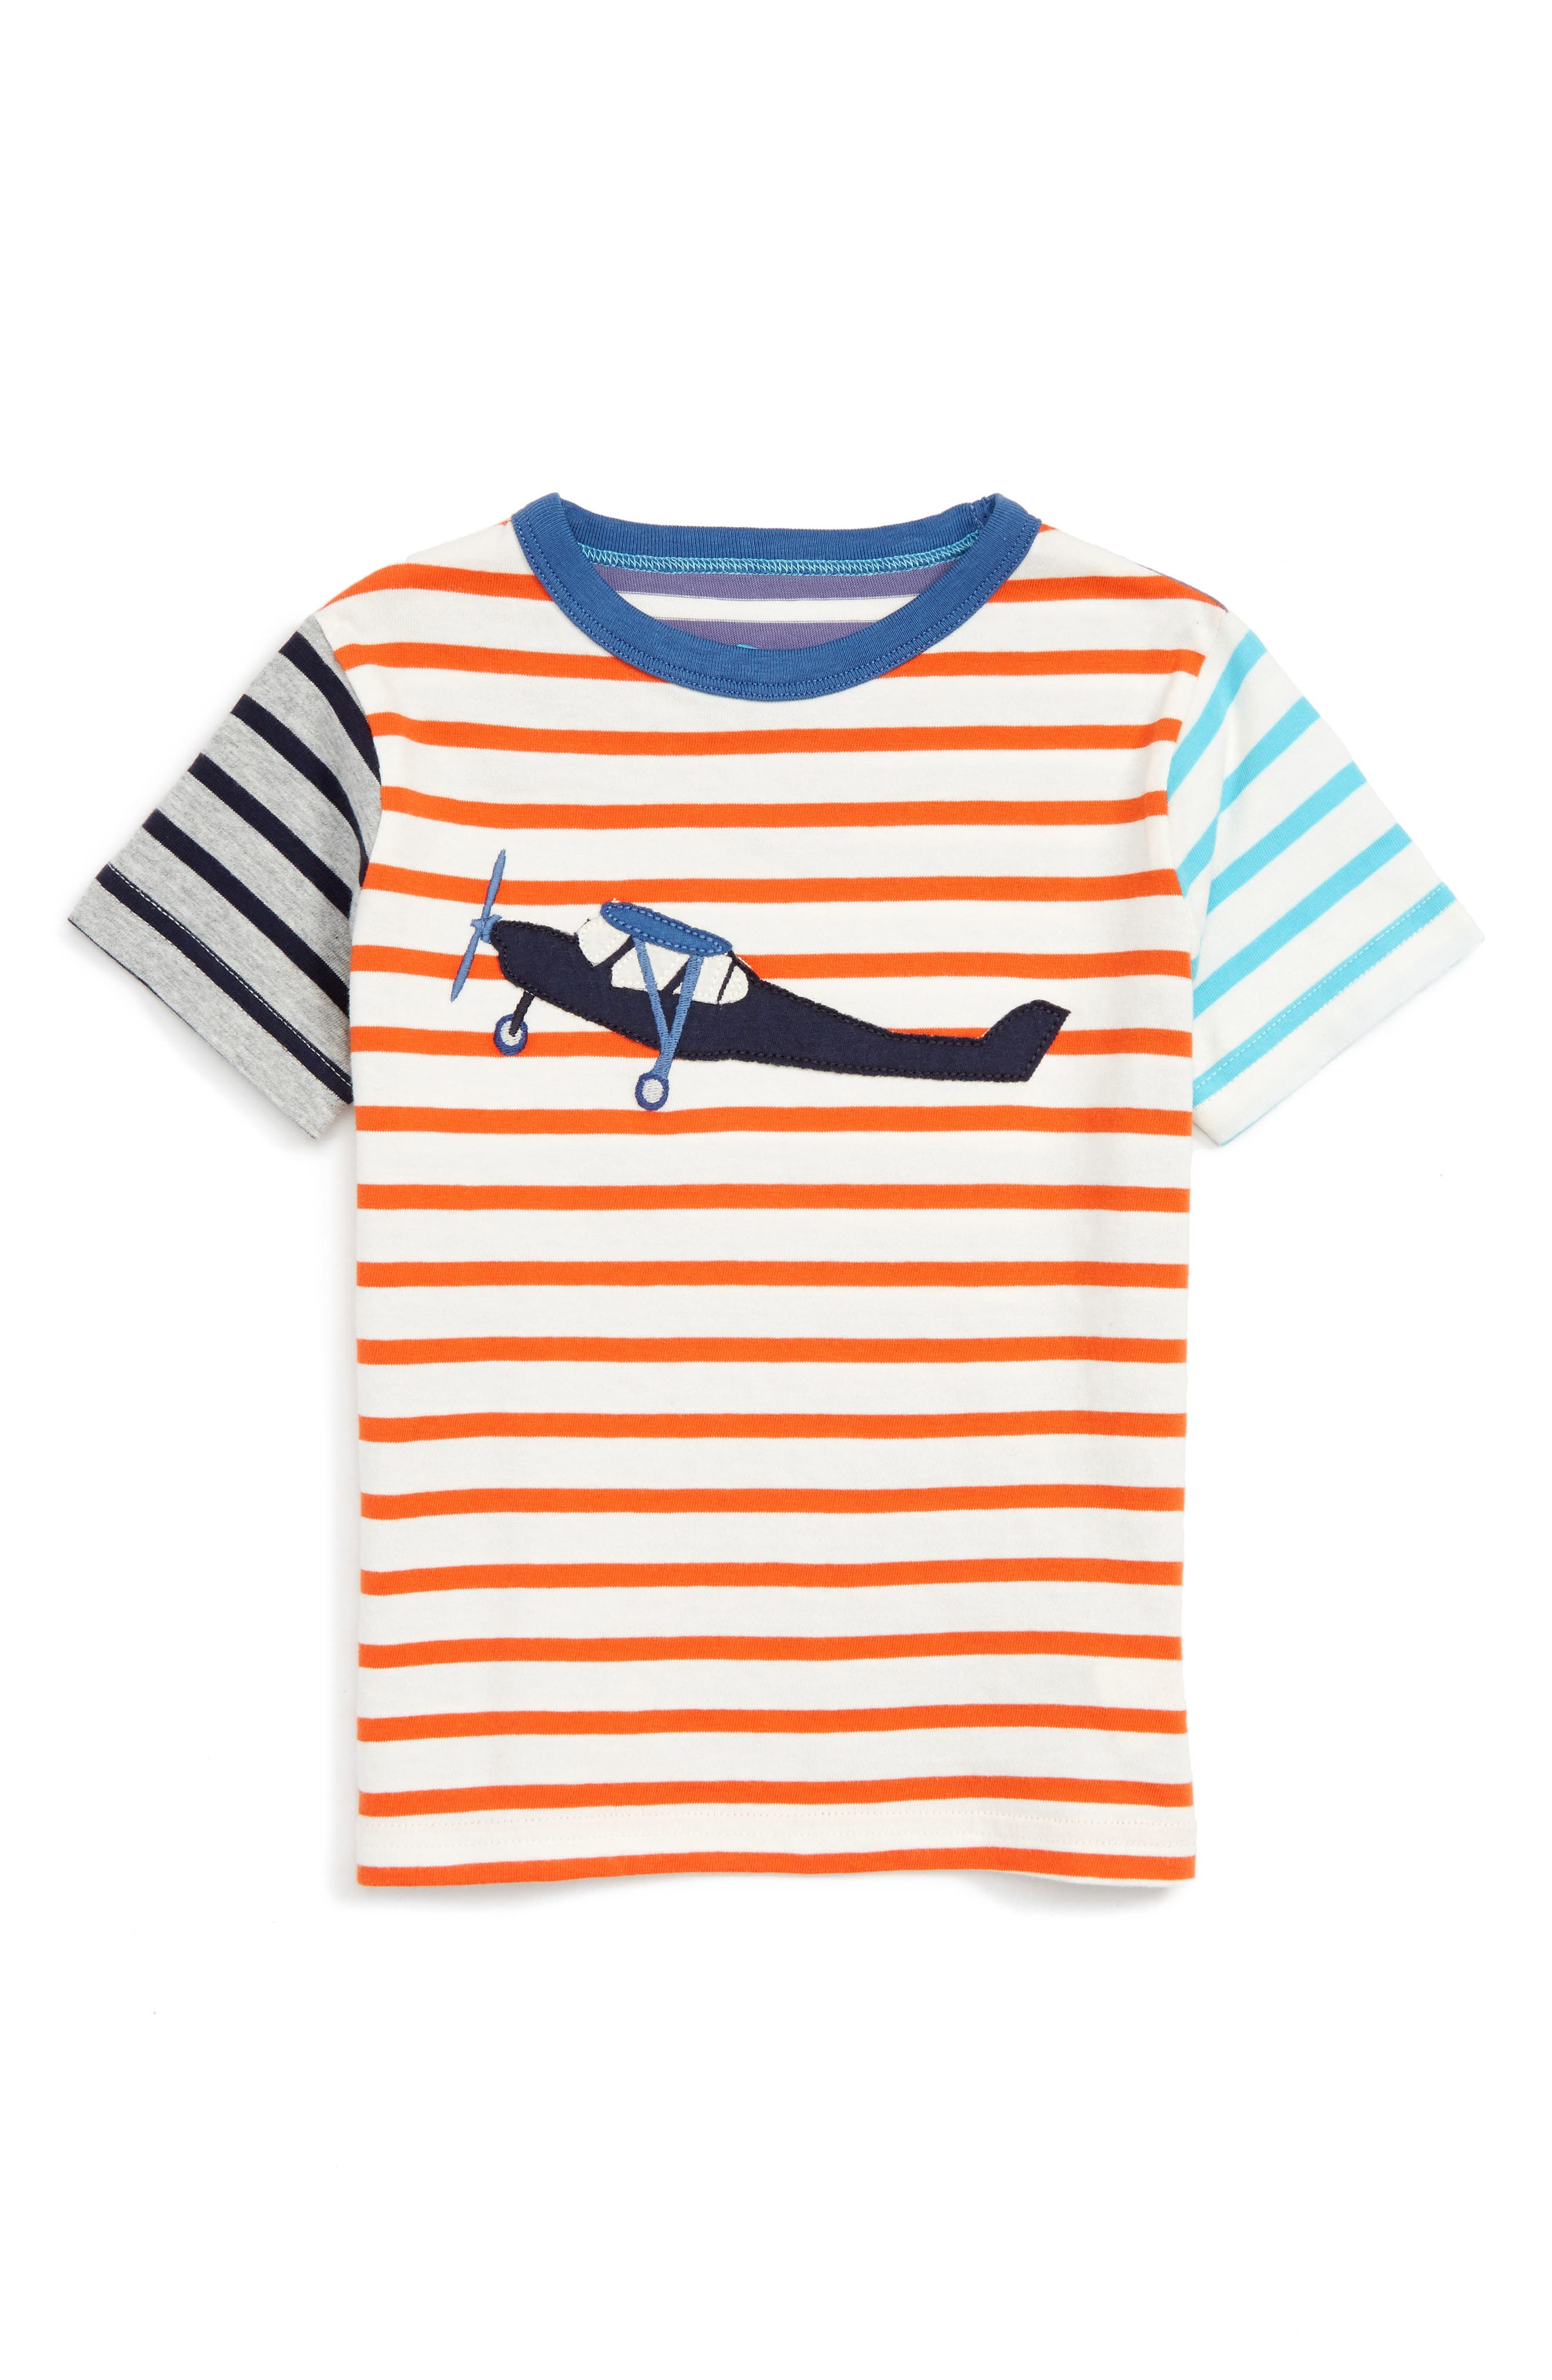 Mini Boden Hotchpotch Vehicle Appliqué T-Shirt (Toddler Boys, Little Boys & Big Boys)